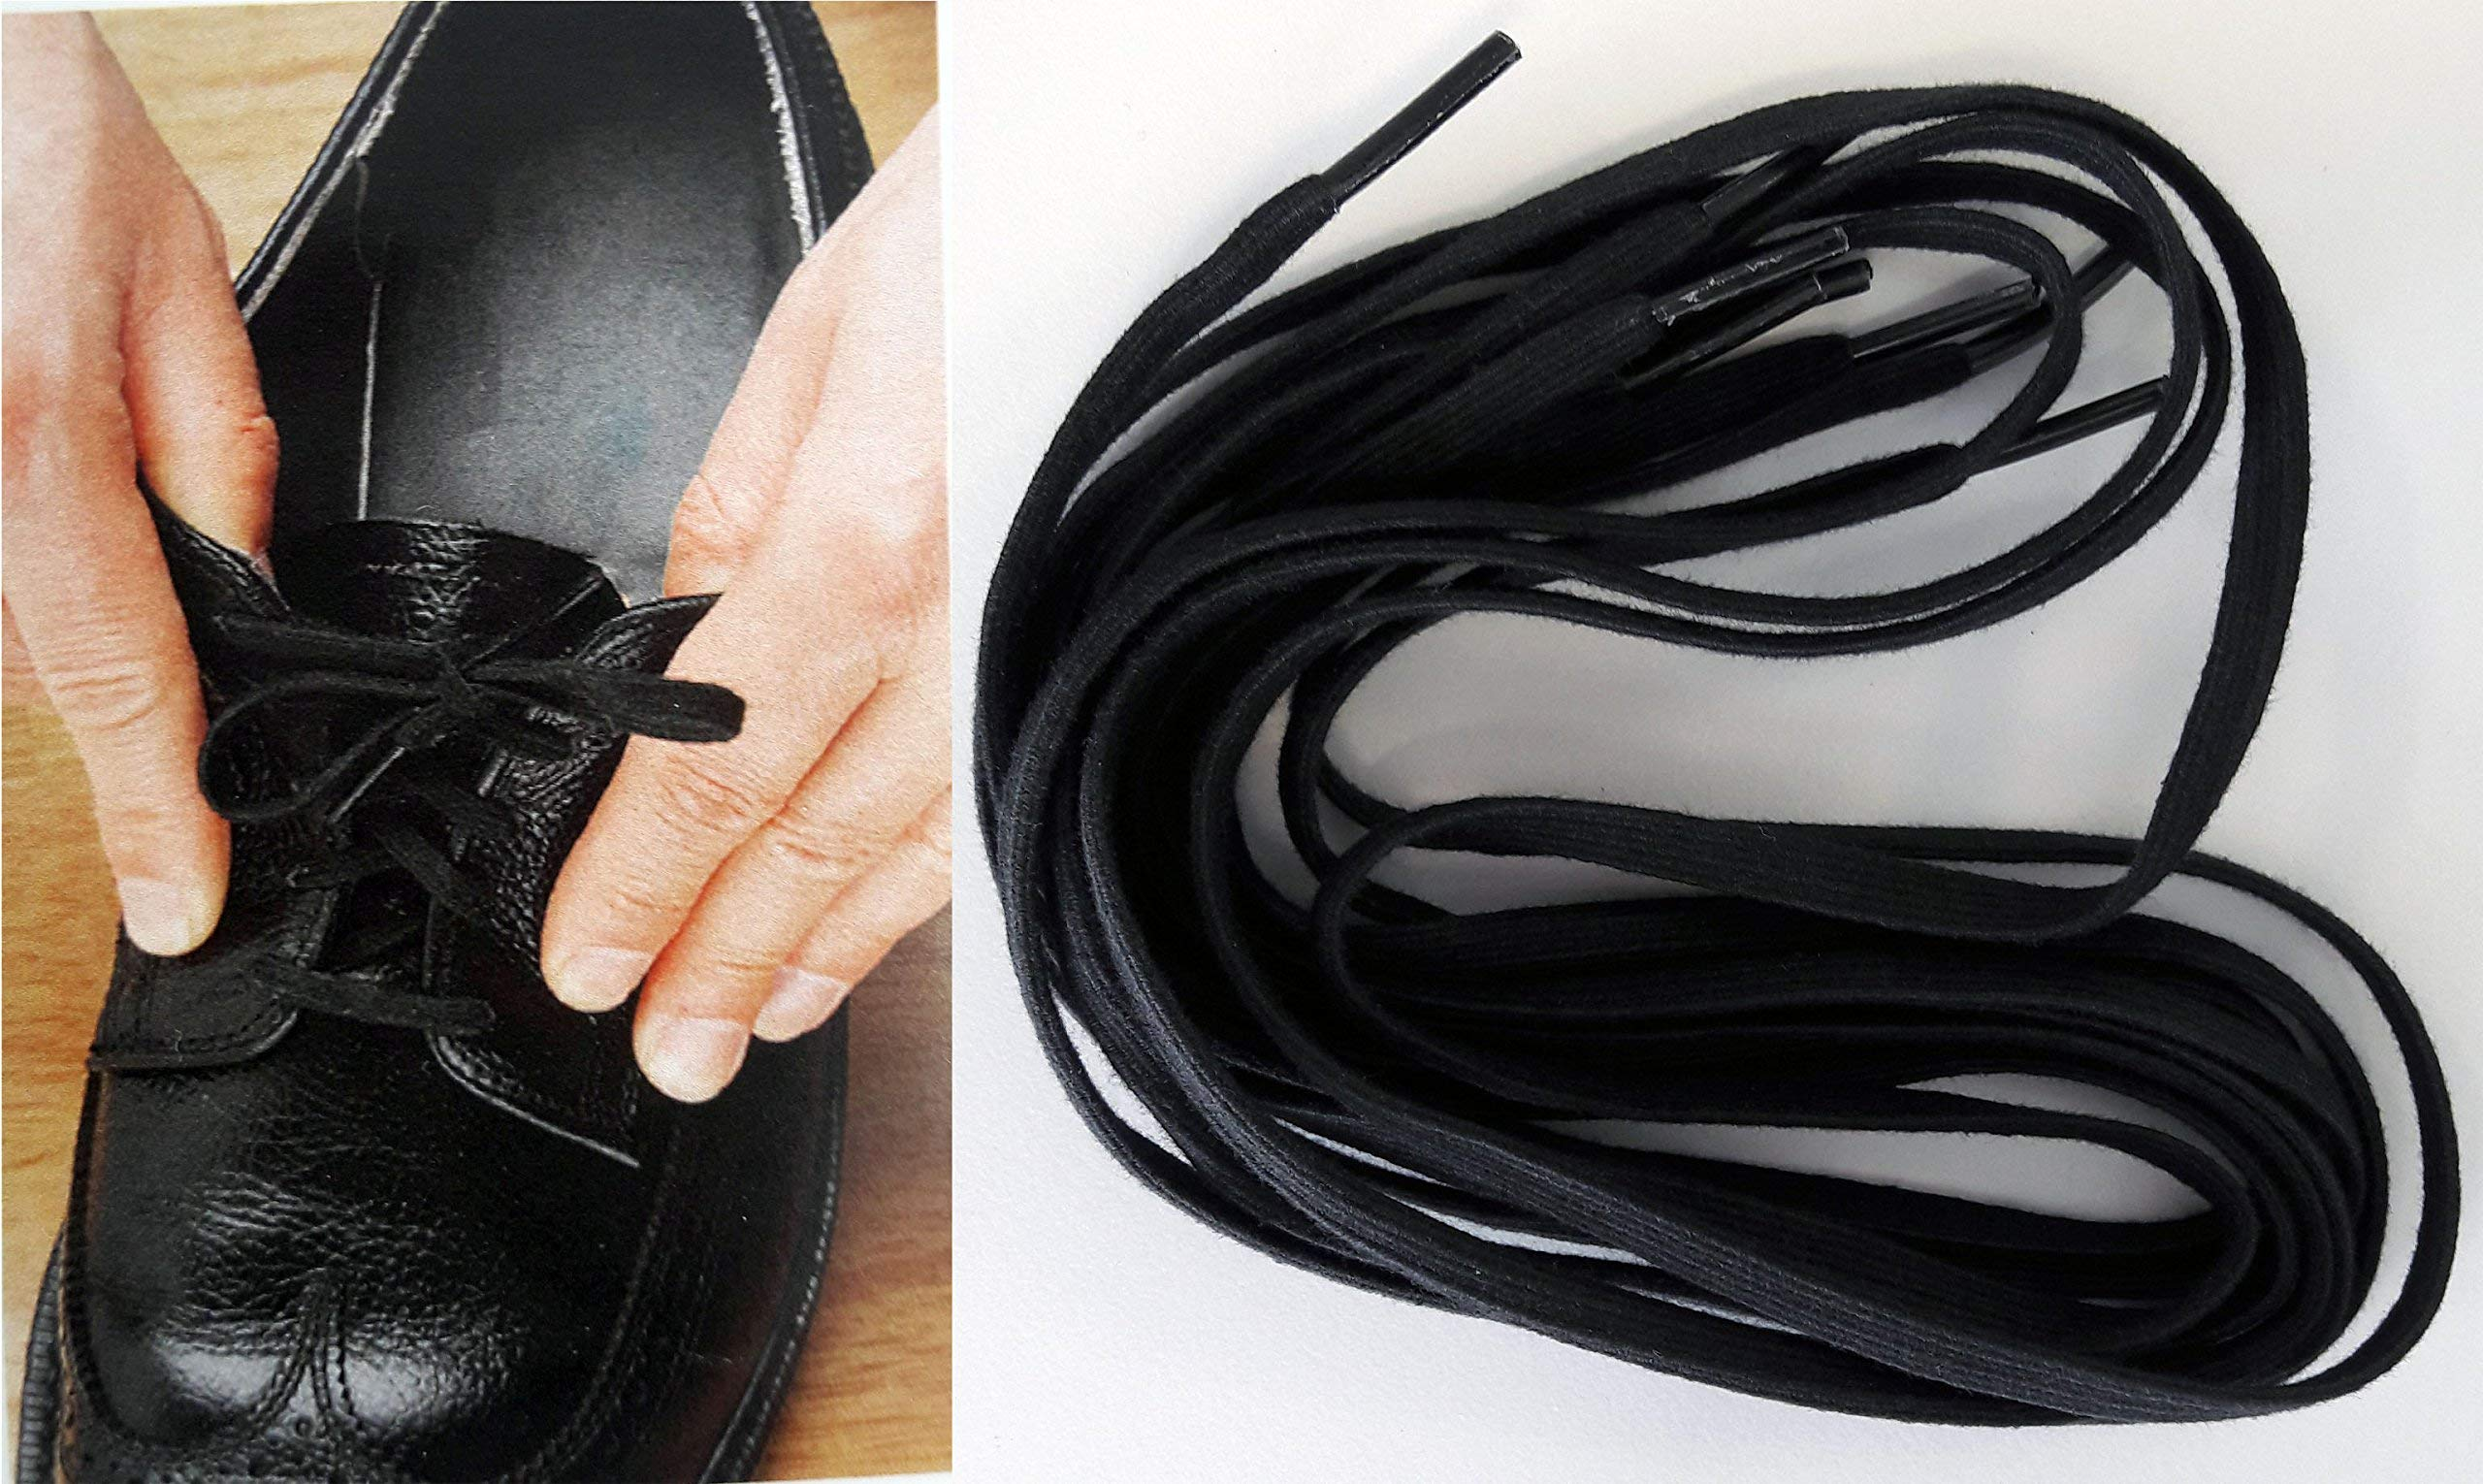 North Coast Medical NC28738 Deluxe Elastic Shoelaces Black 27 in. - 2 Pairs by North Coast Medical